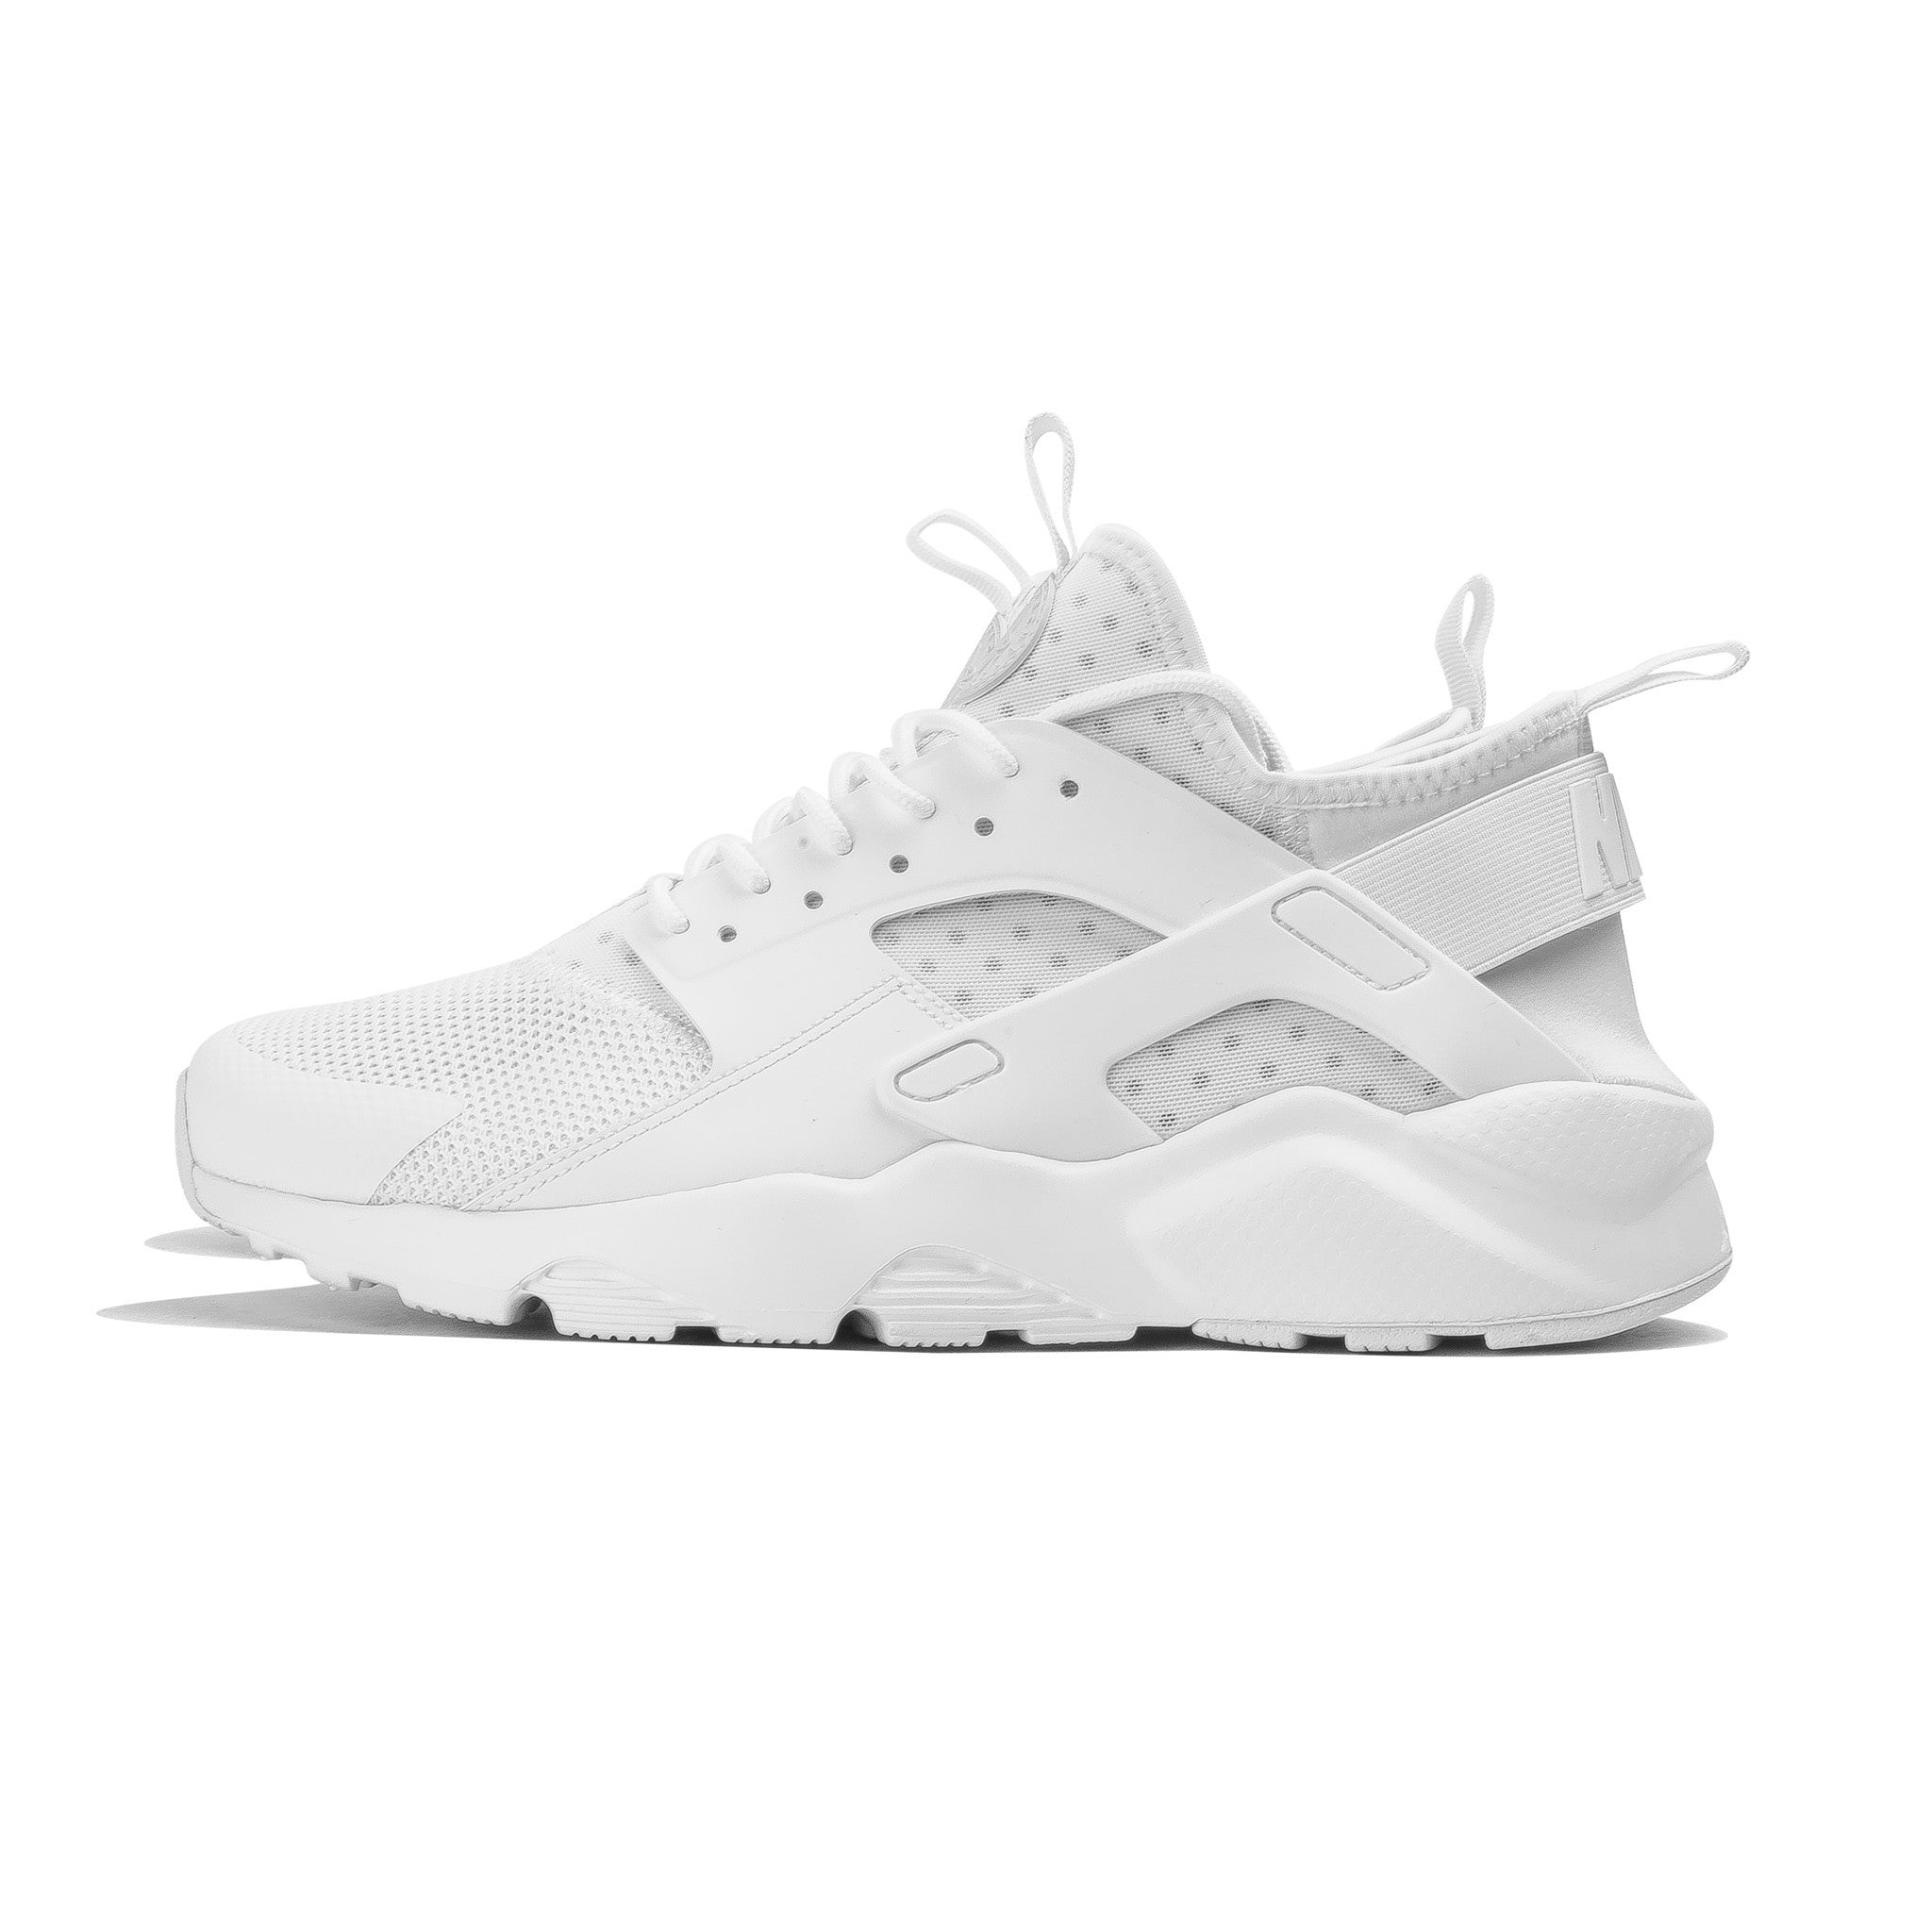 premium selection reasonably priced best selling Nike Air Huarache Run Ultra 819685-101, vans lunettes